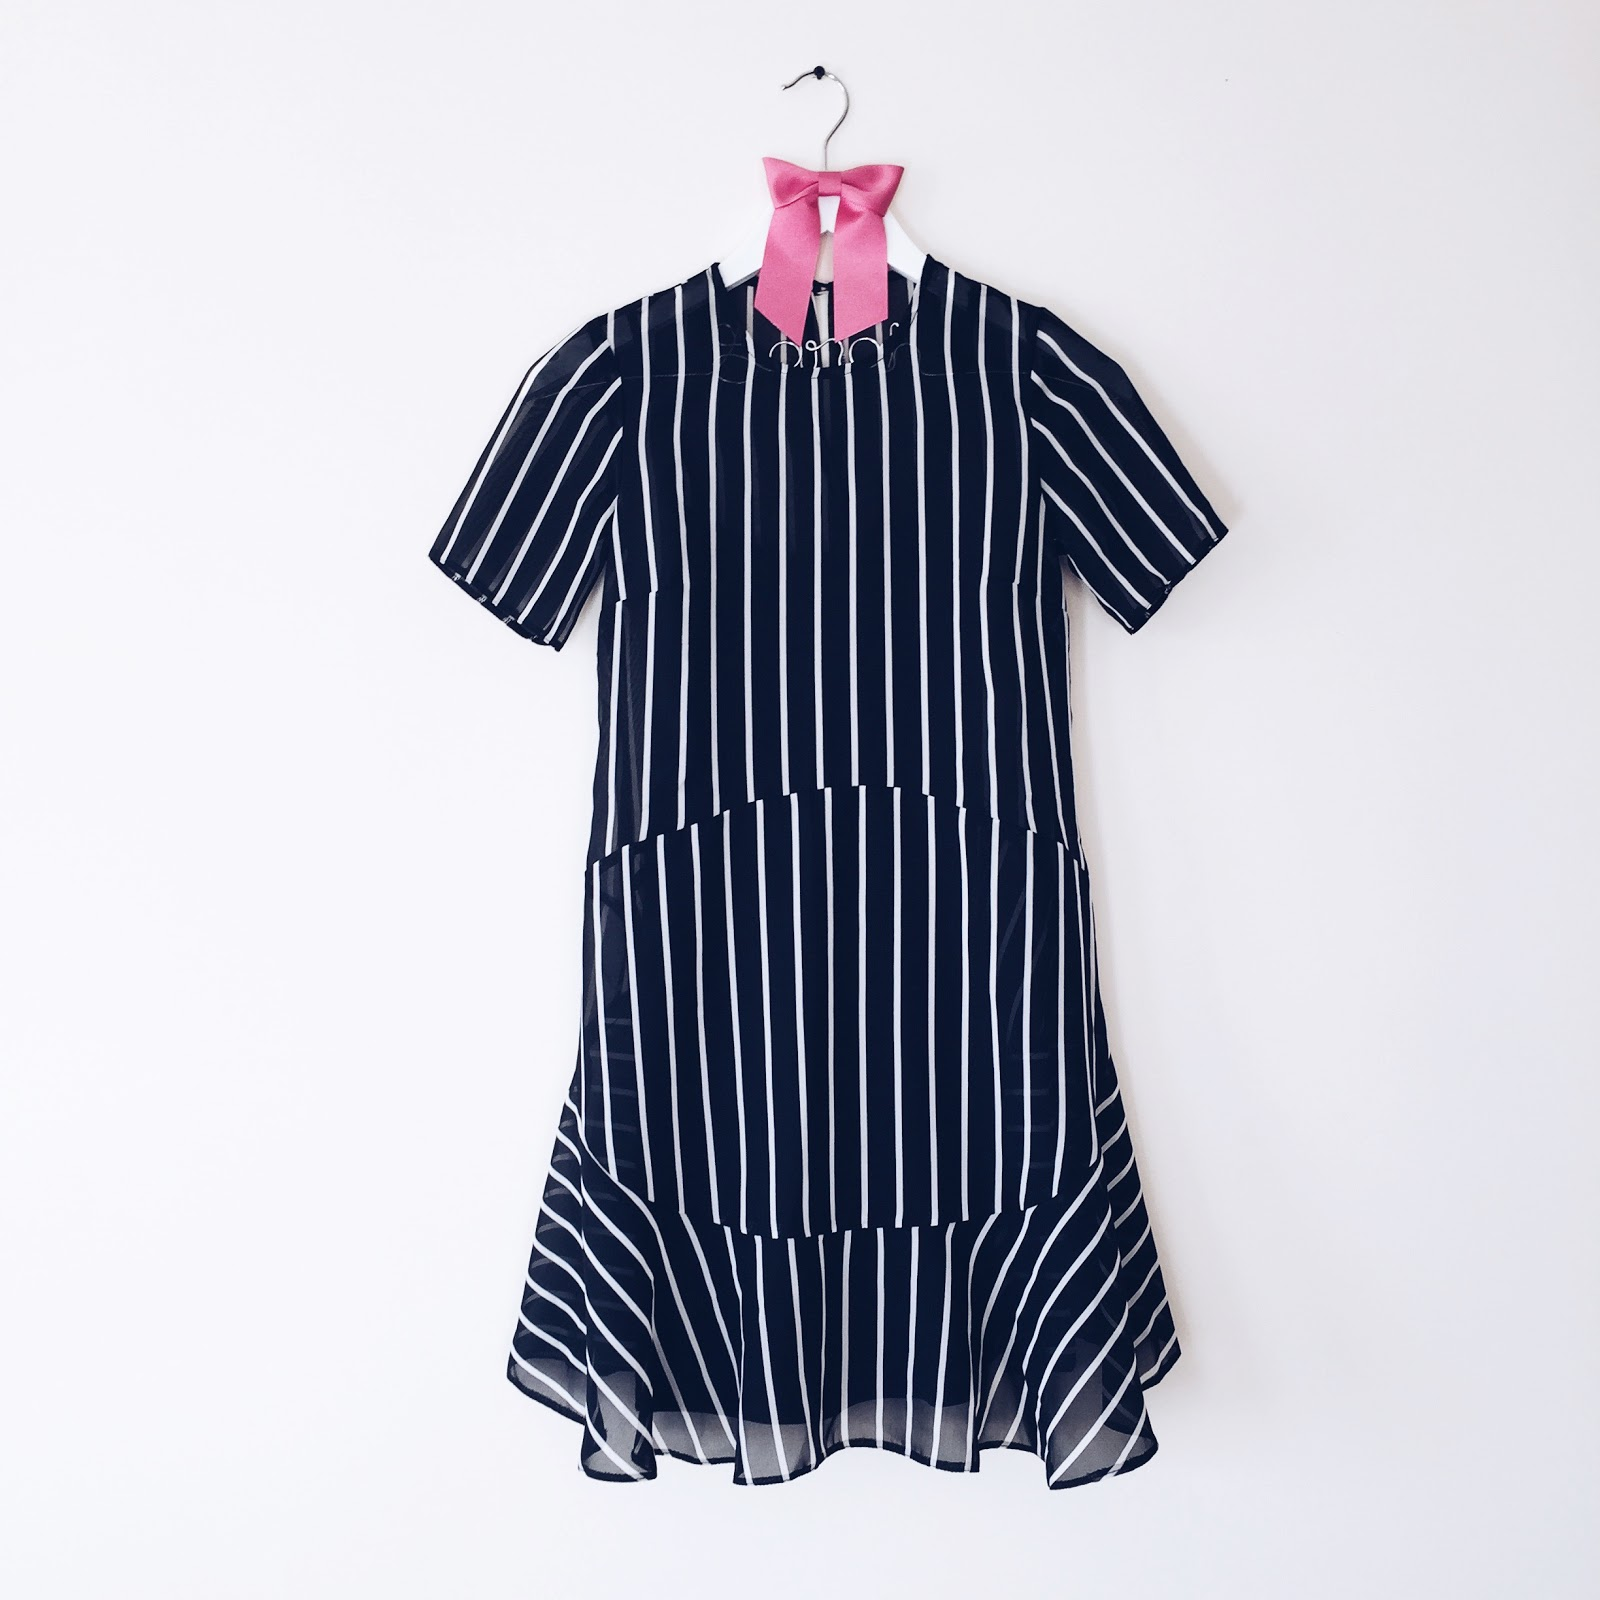 monochrome stripy dress